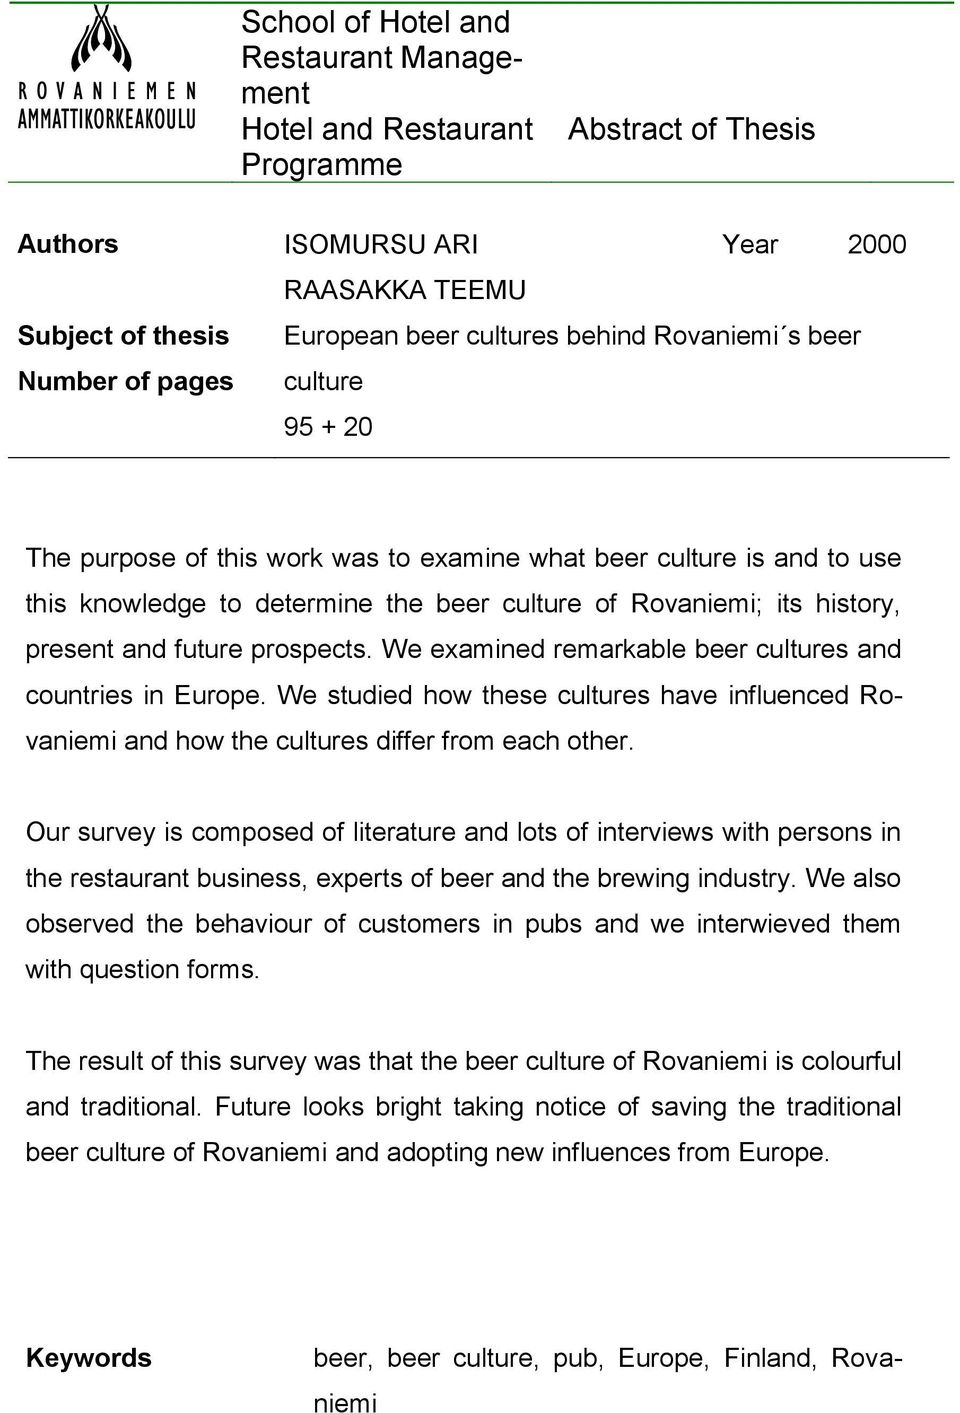 future prospects. We examined remarkable beer cultures and countries in Europe. We studied how these cultures have influenced Rovaniemi and how the cultures differ from each other.